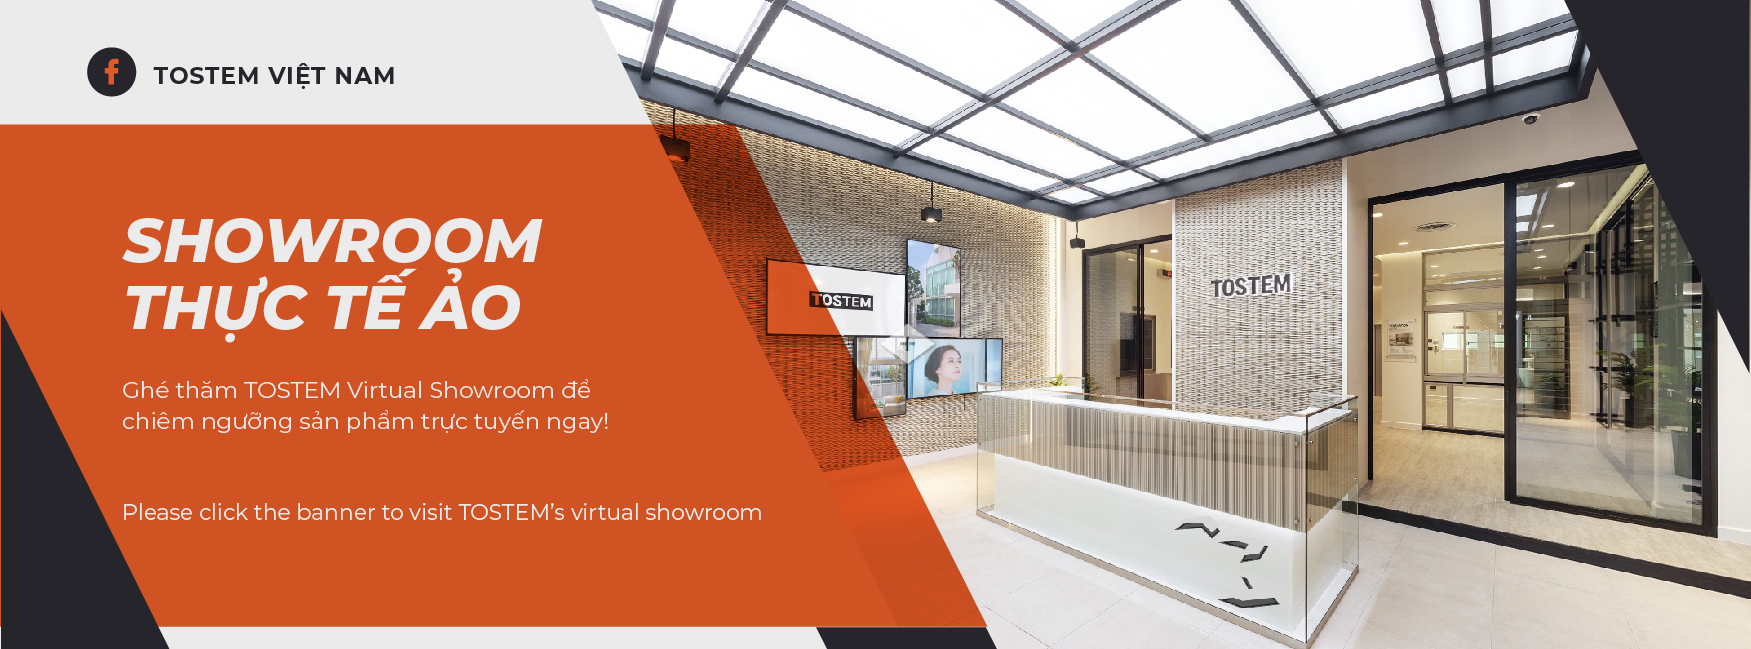 Tostem virtual showroom